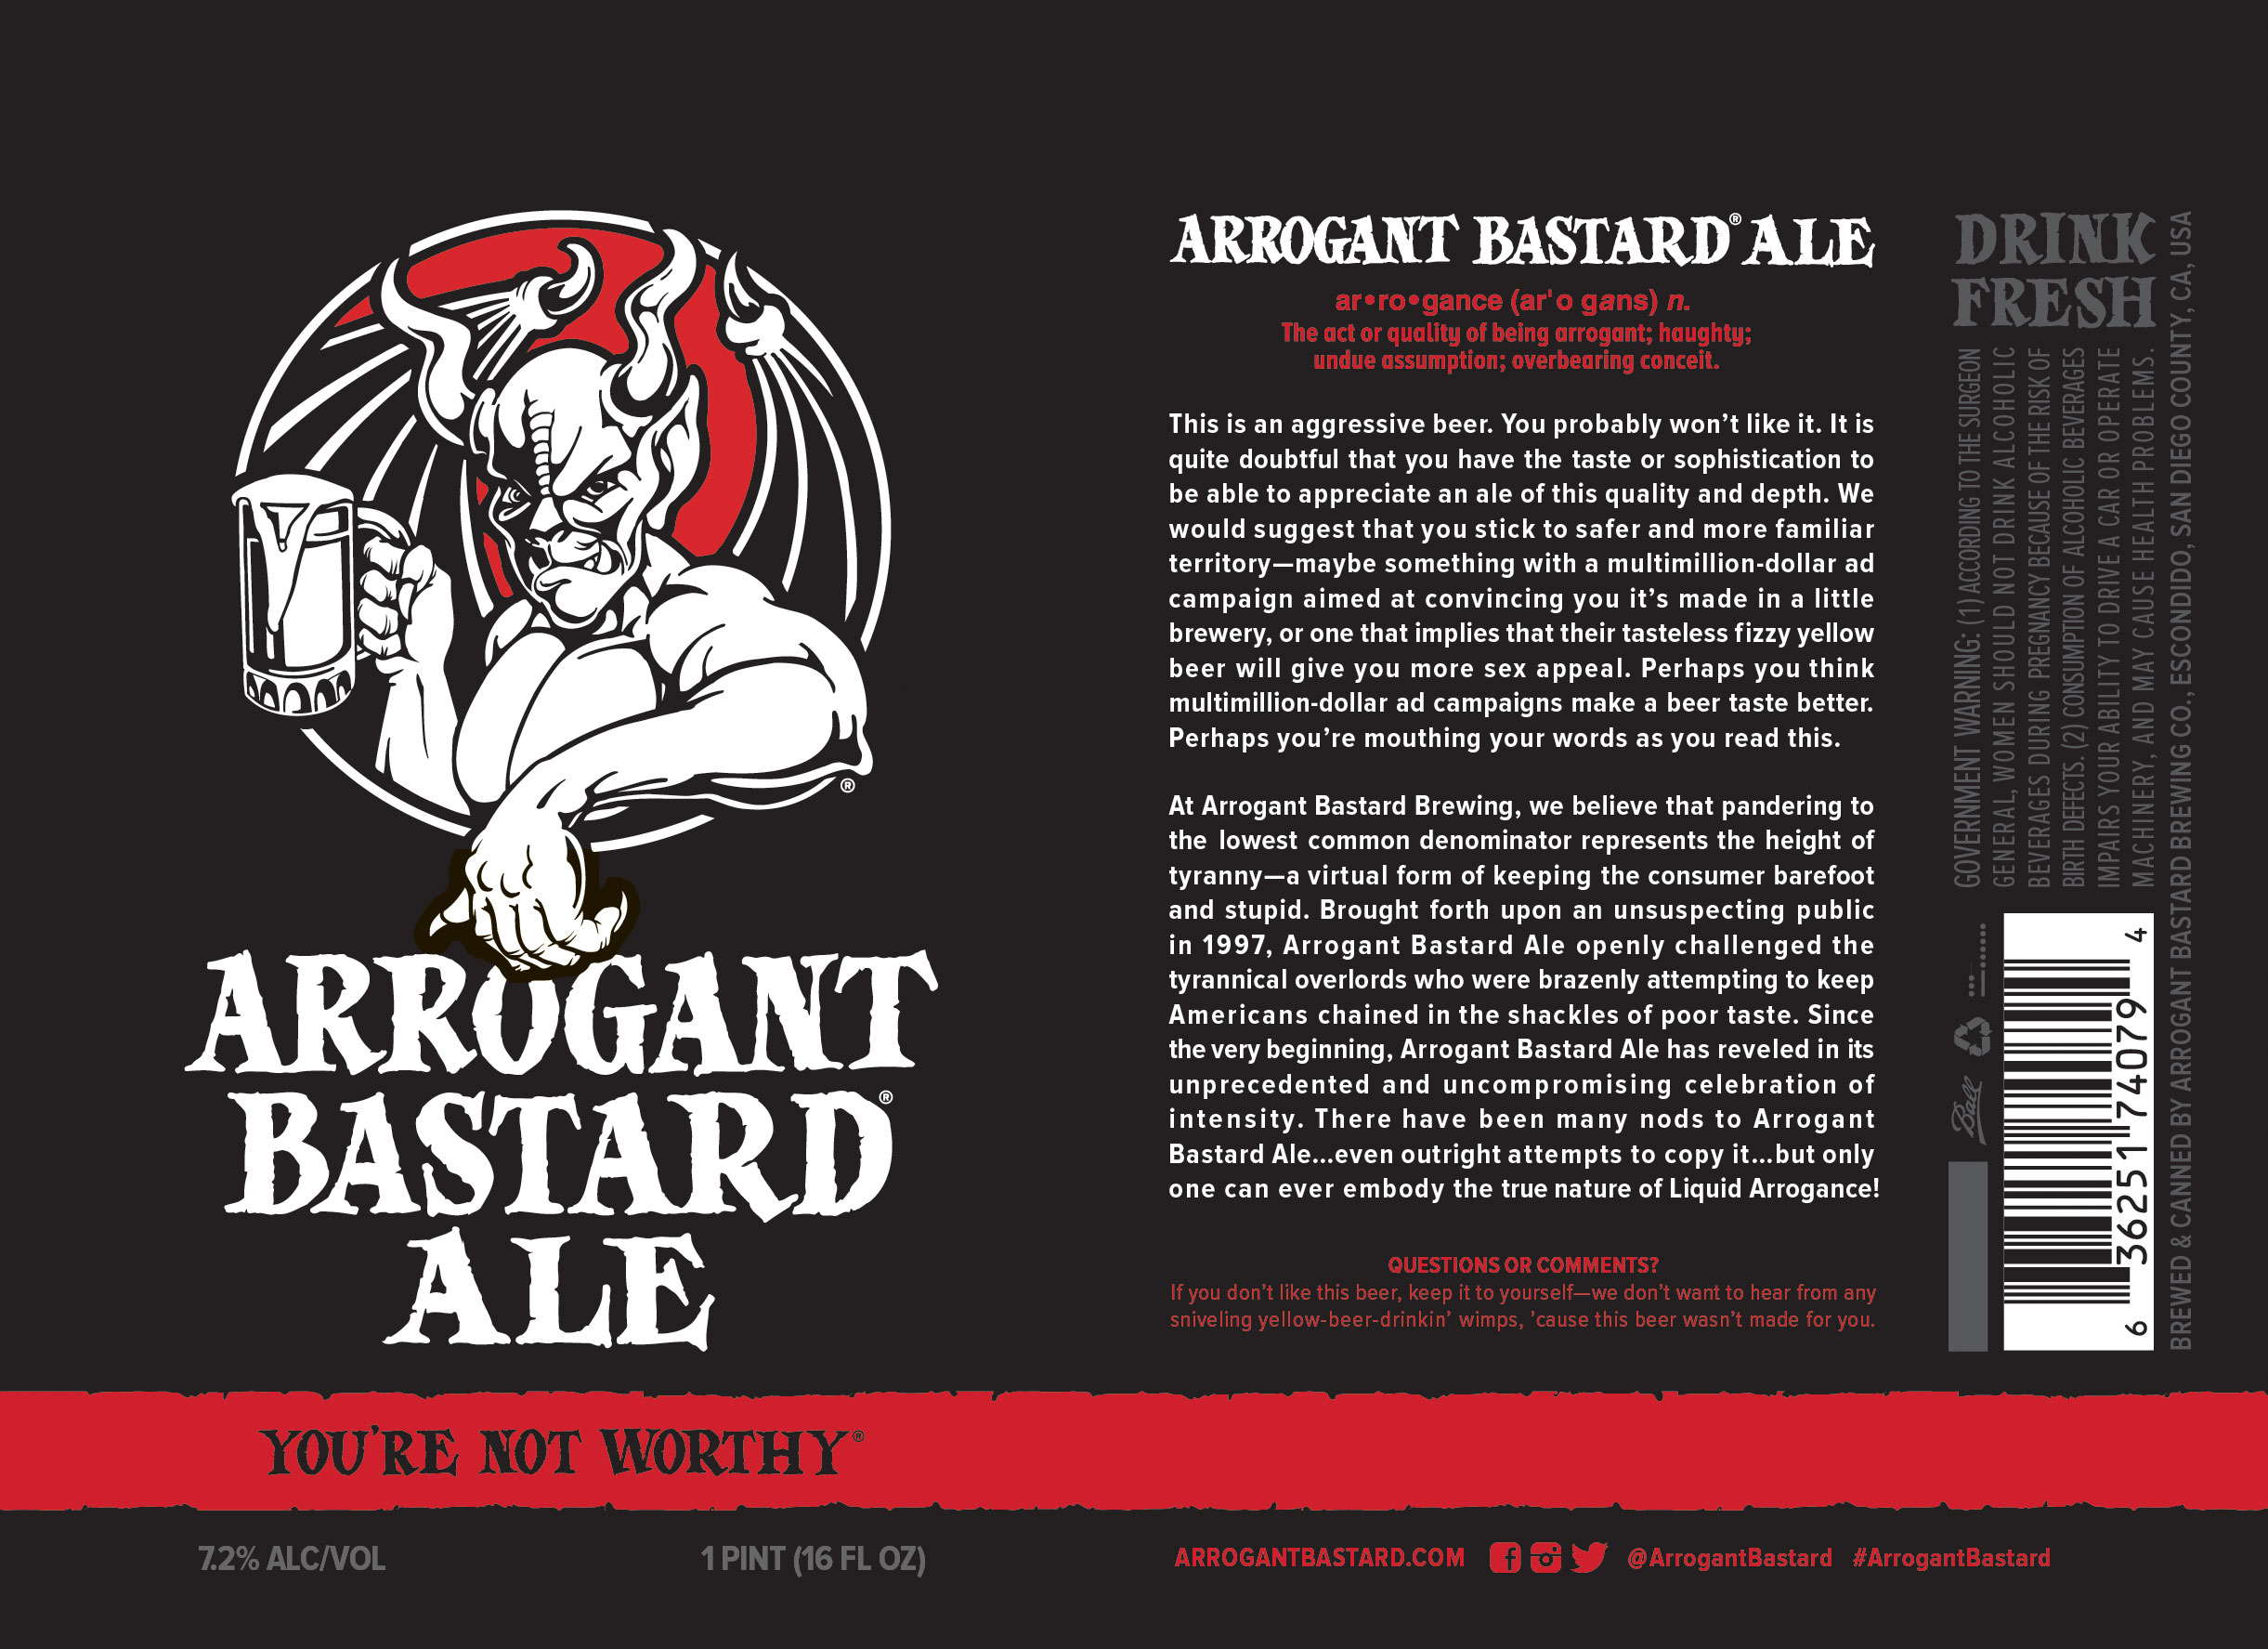 Stone Brewing Has Canned Its Arrogant Bastard Ale